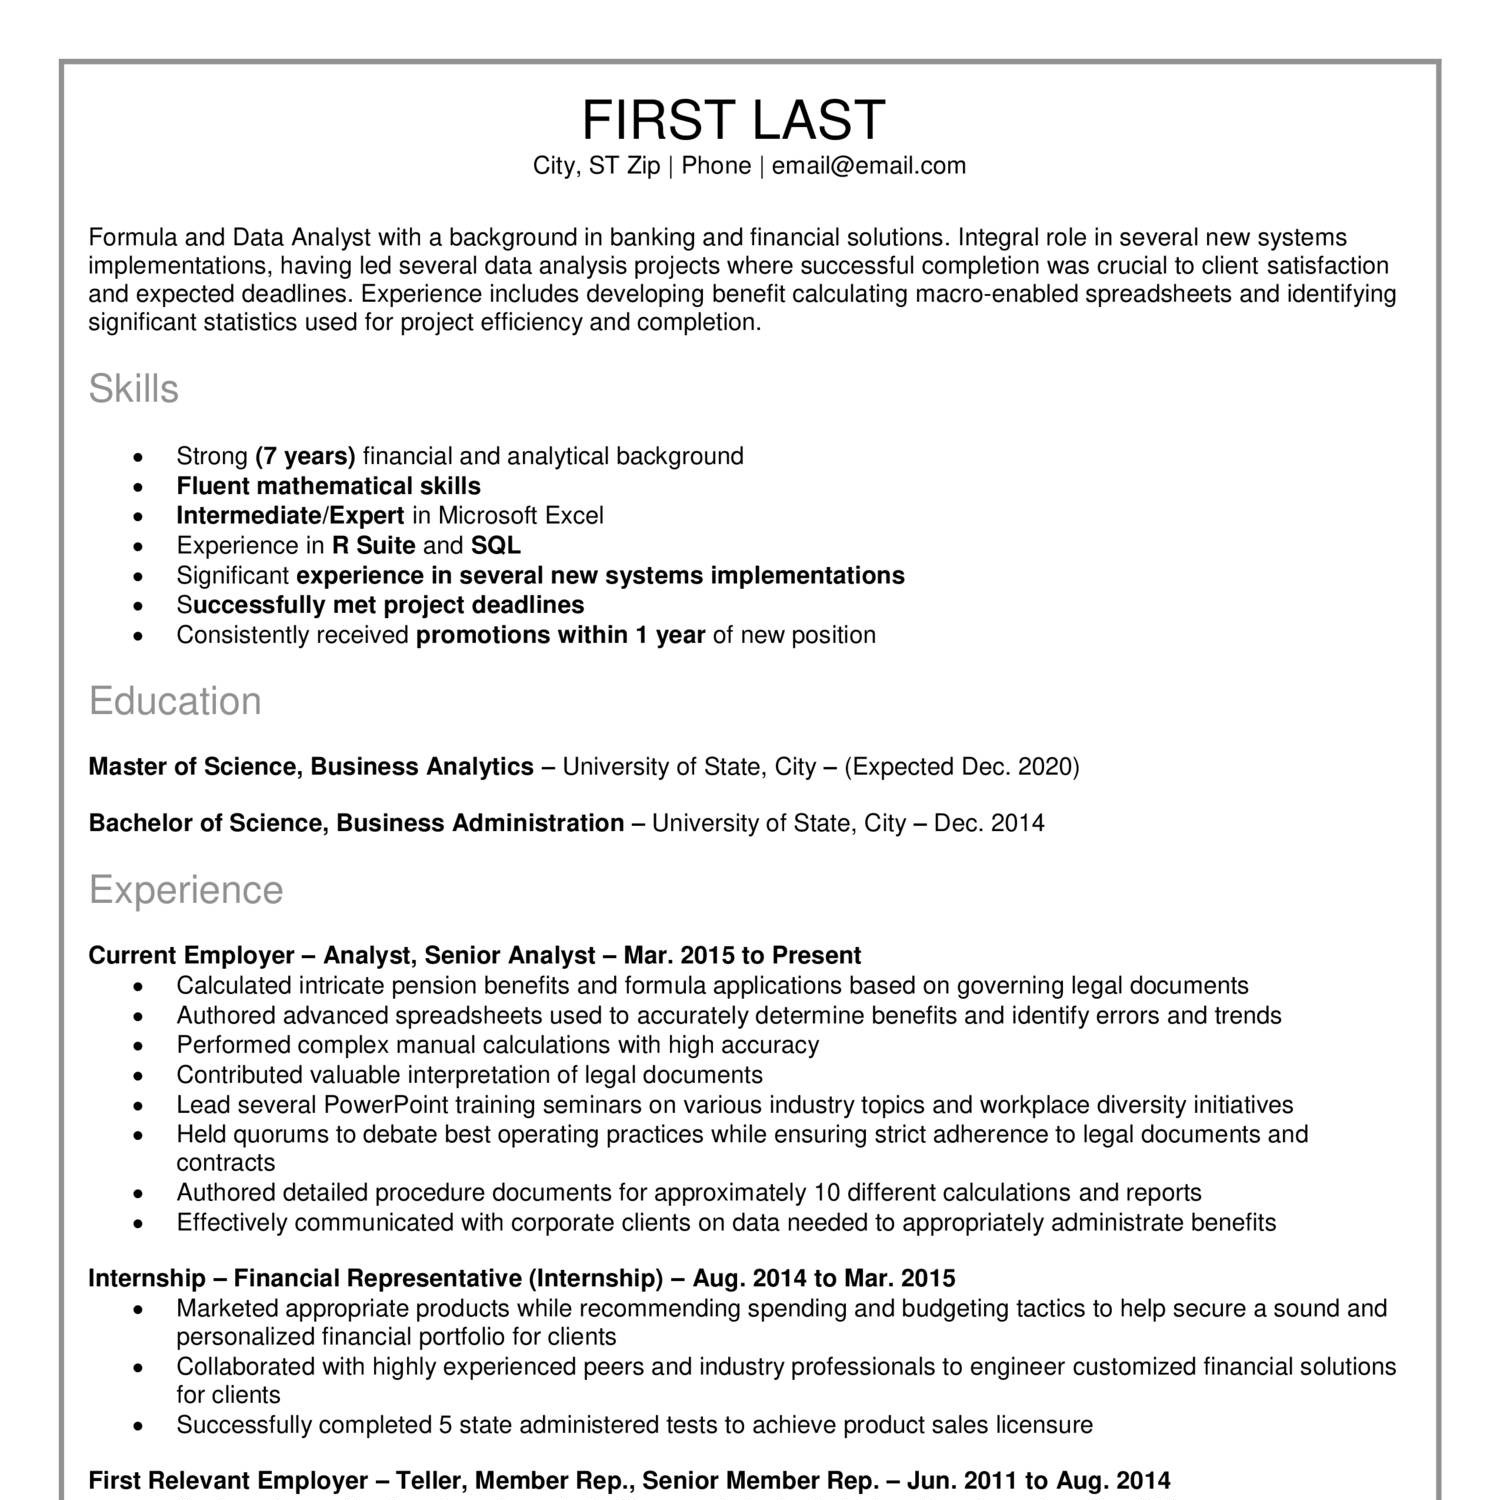 reddit resume docdroid data science pdf safety experience introduction letter for rpa Resume Reddit Data Science Resume